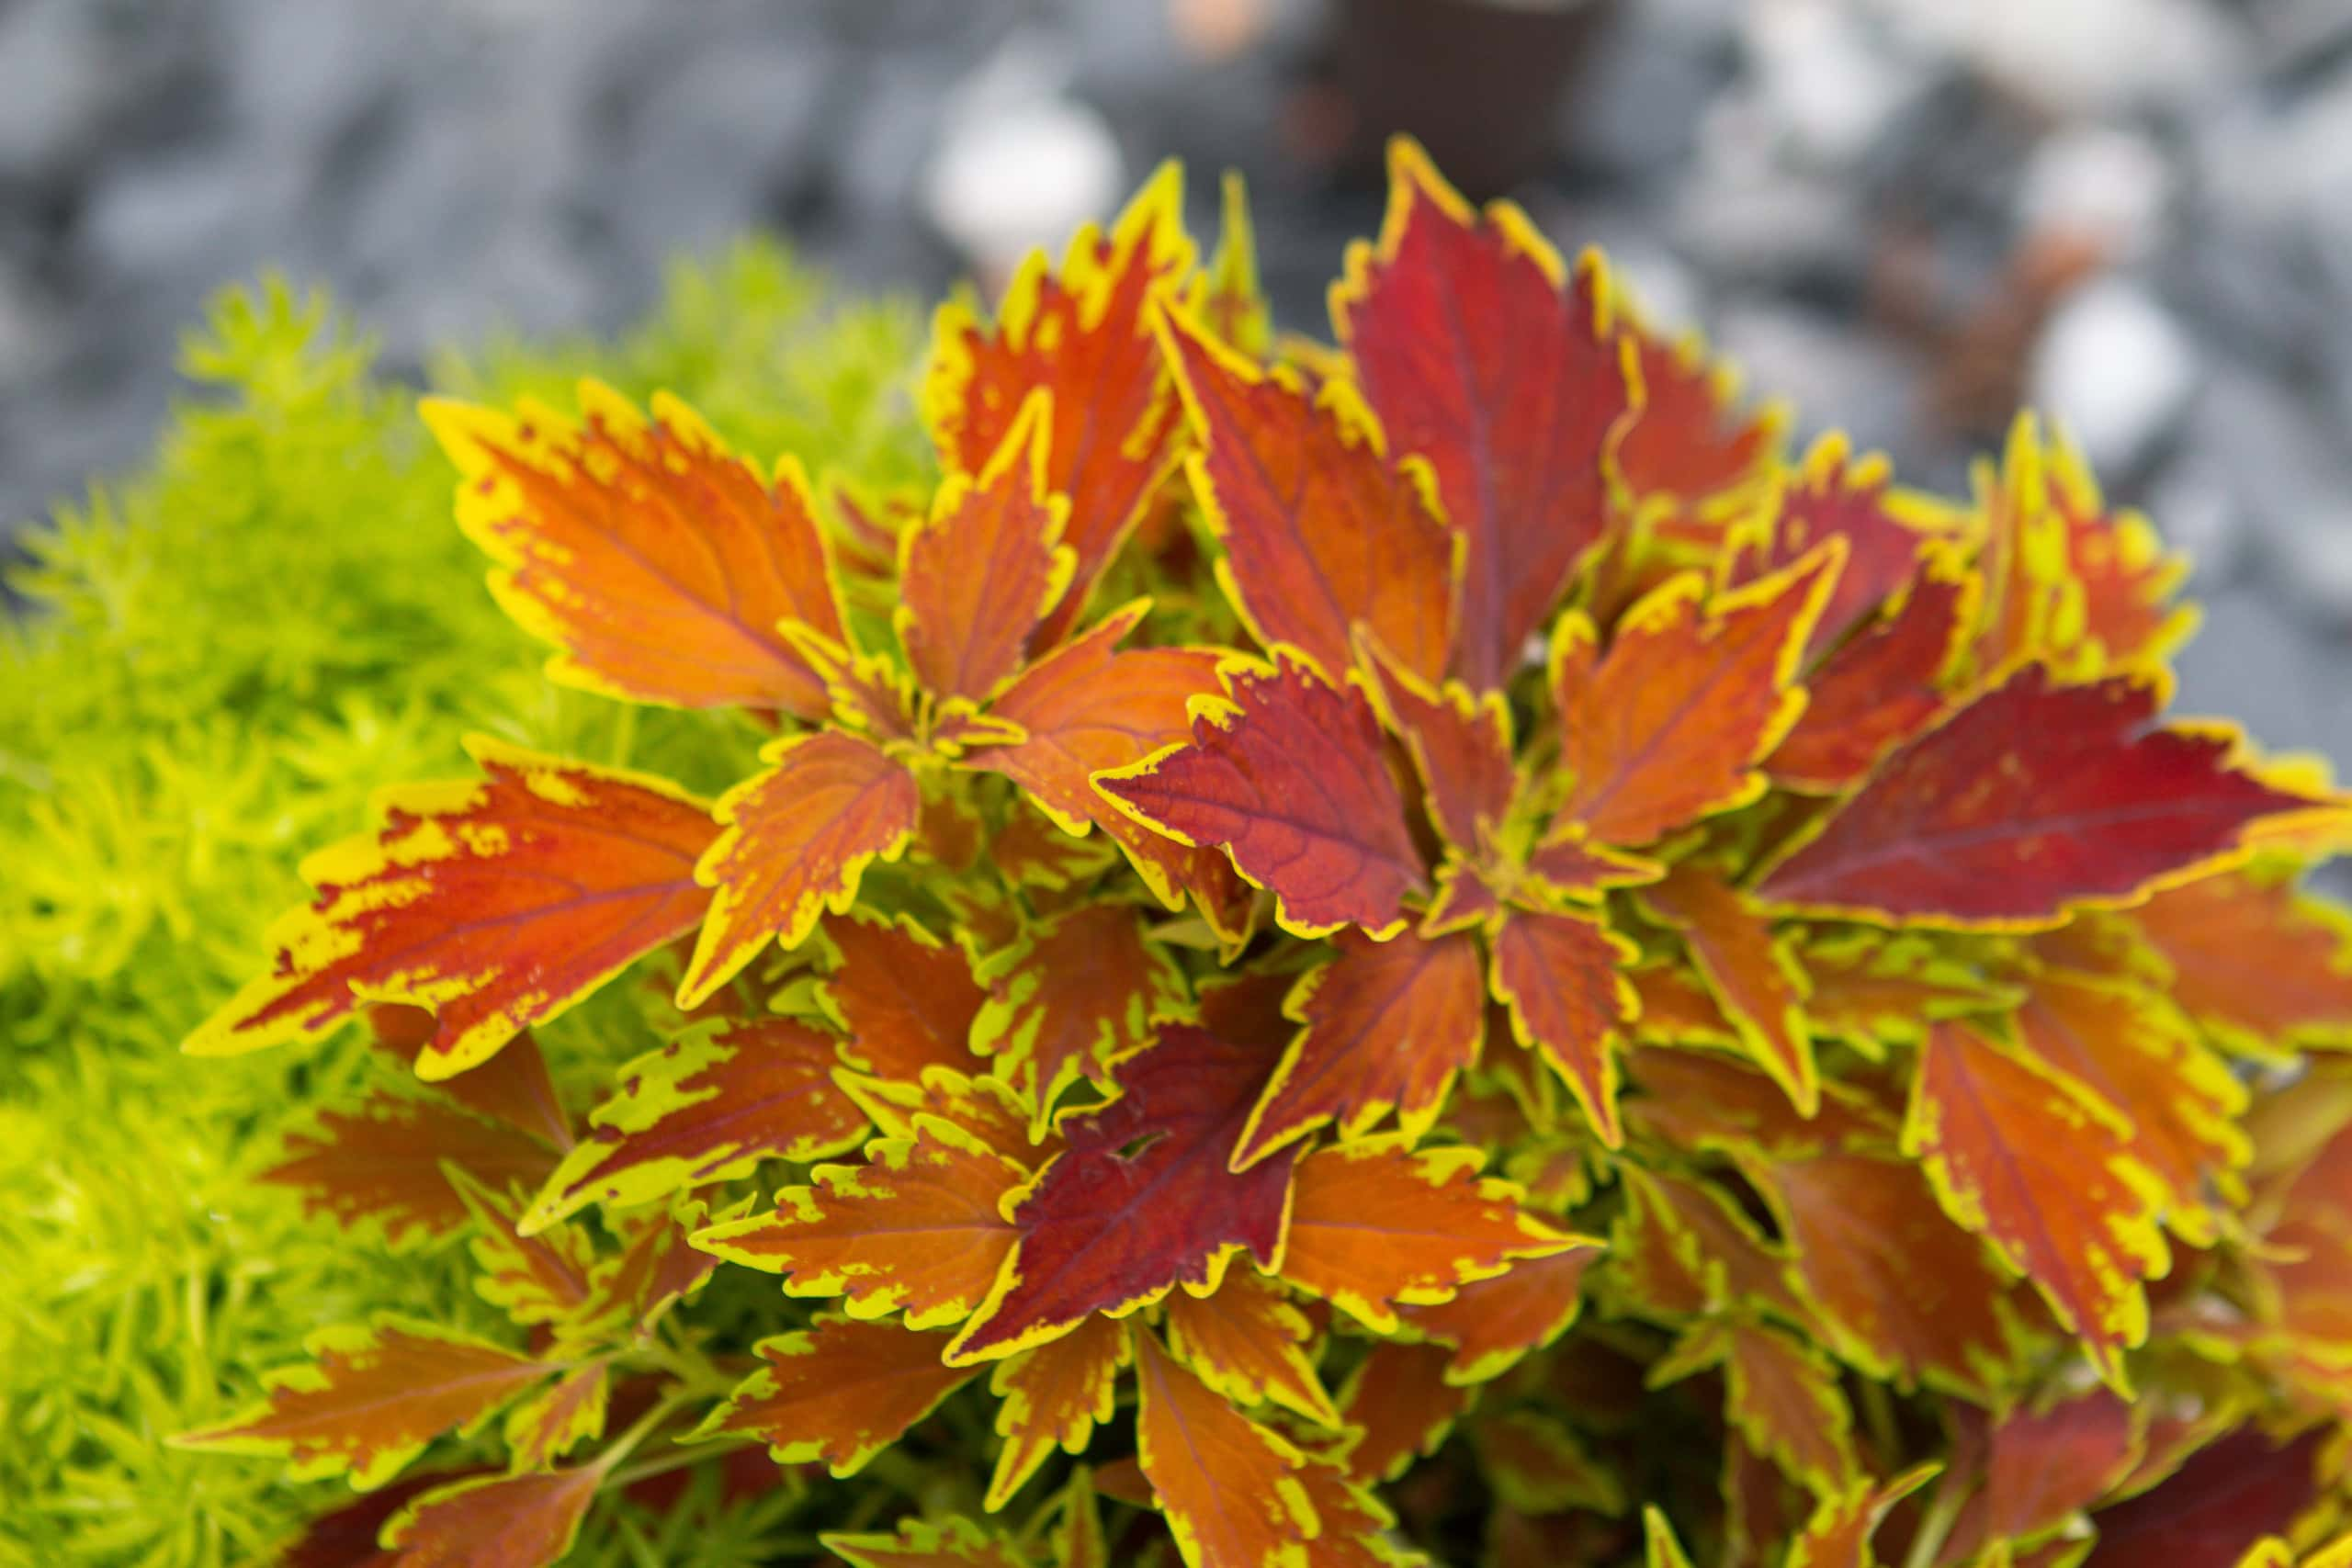 Flame thrower plant